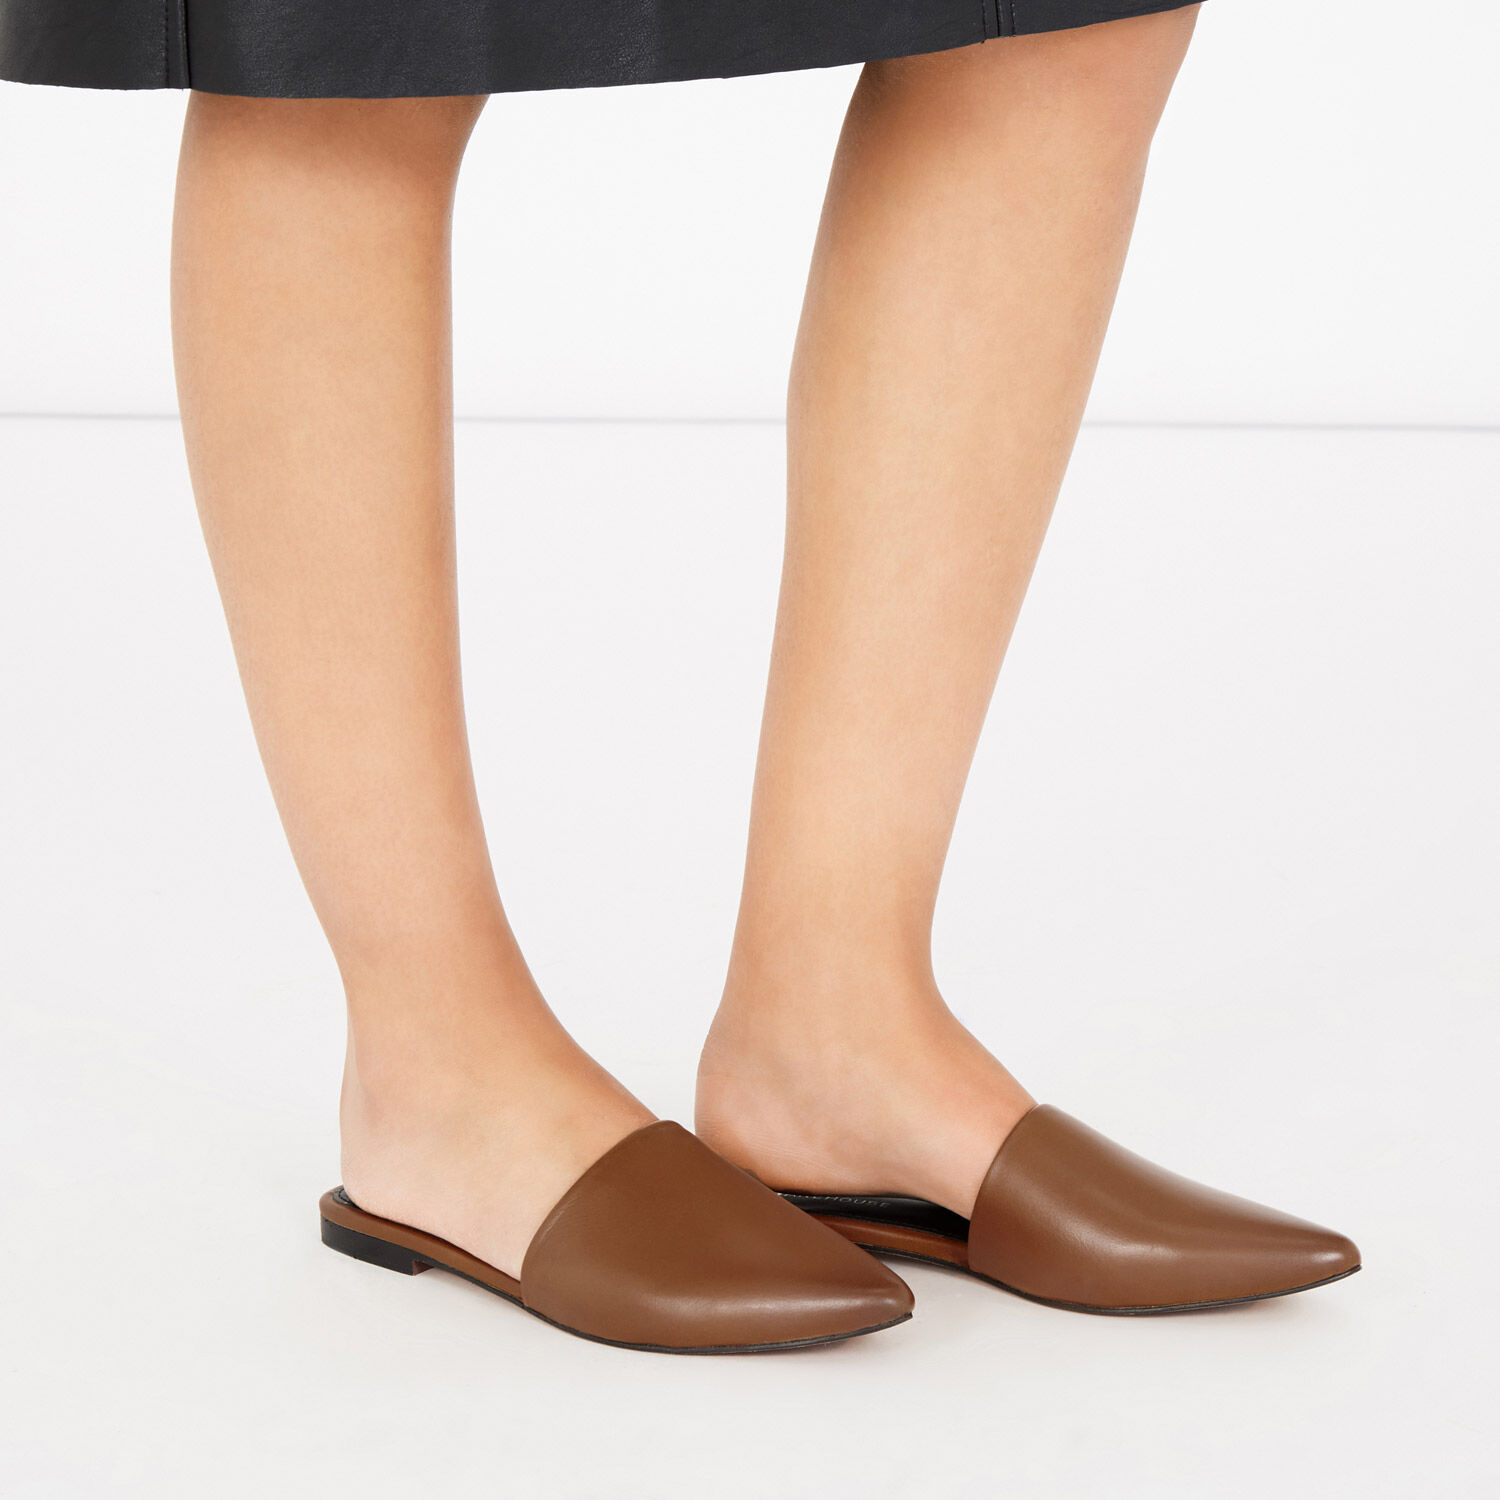 Warehouse, Backless Slip On Shoe Tan 1